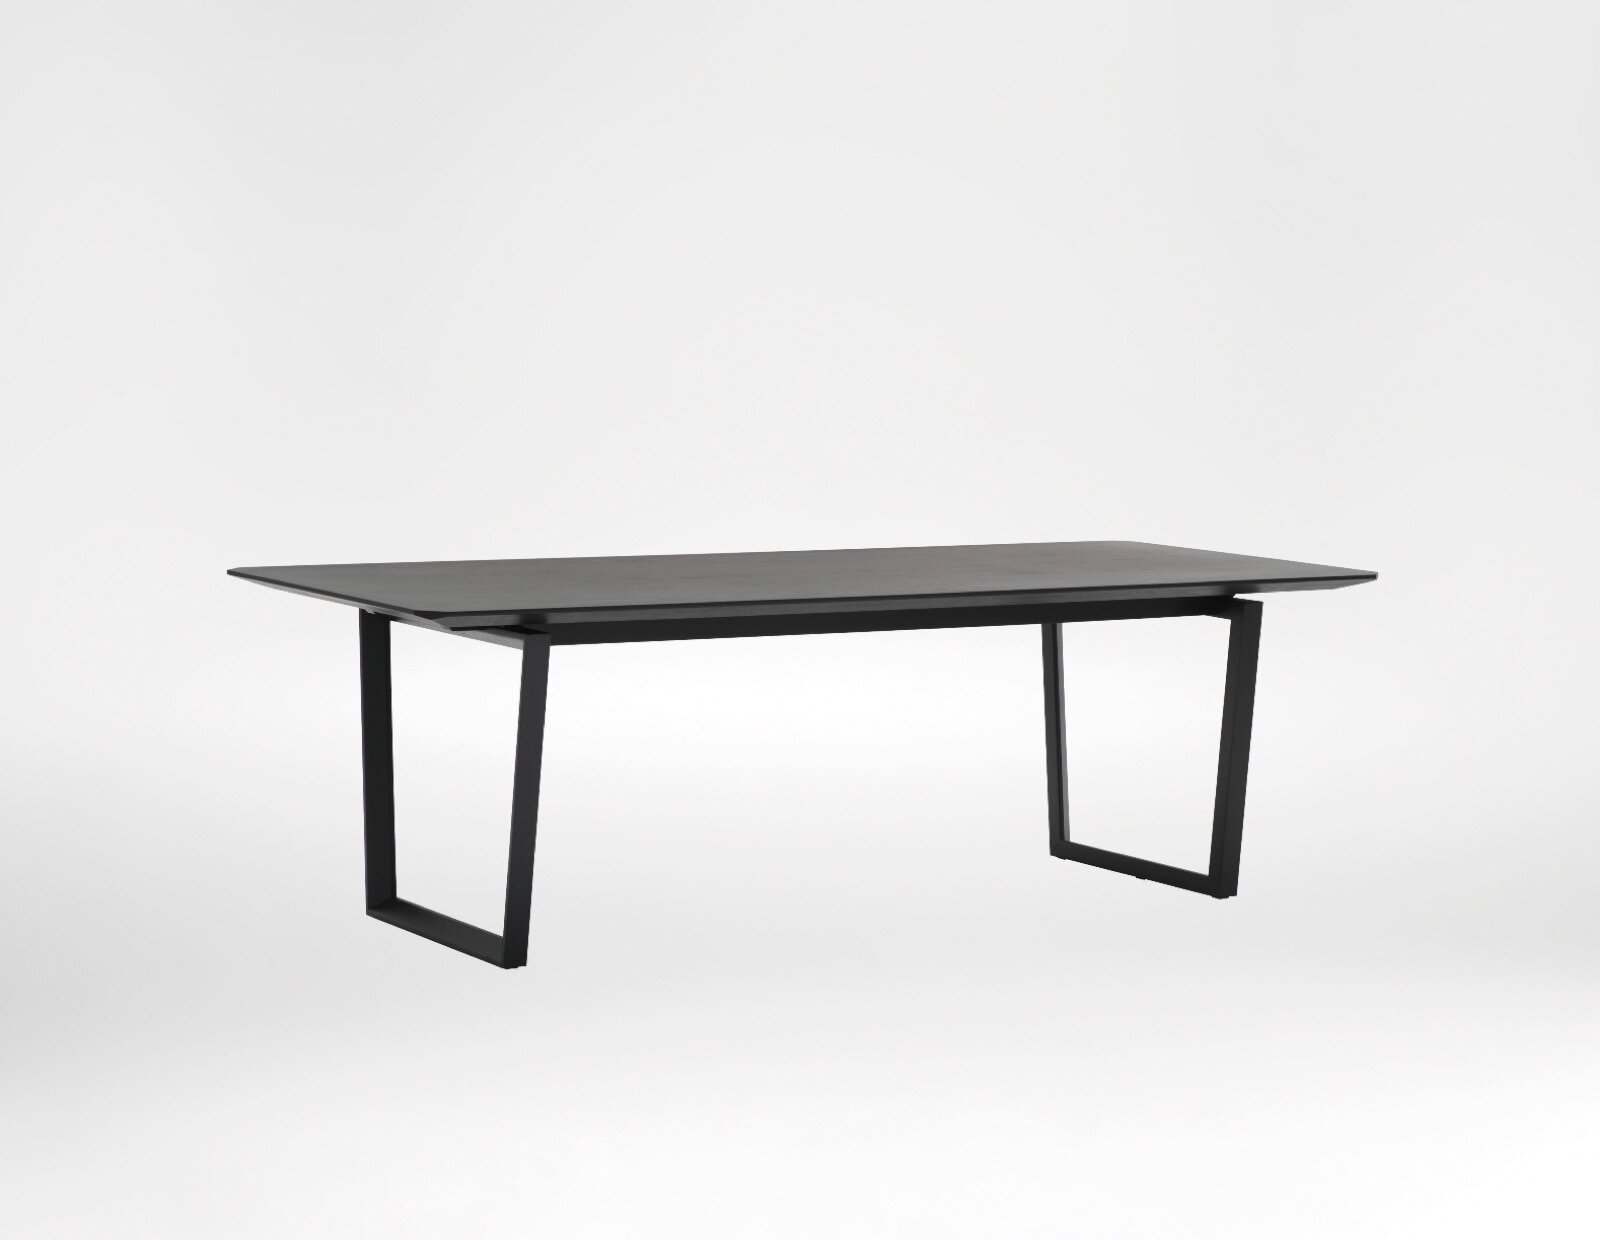 verge dining table - Spectacularly sleek look with distinguished character.